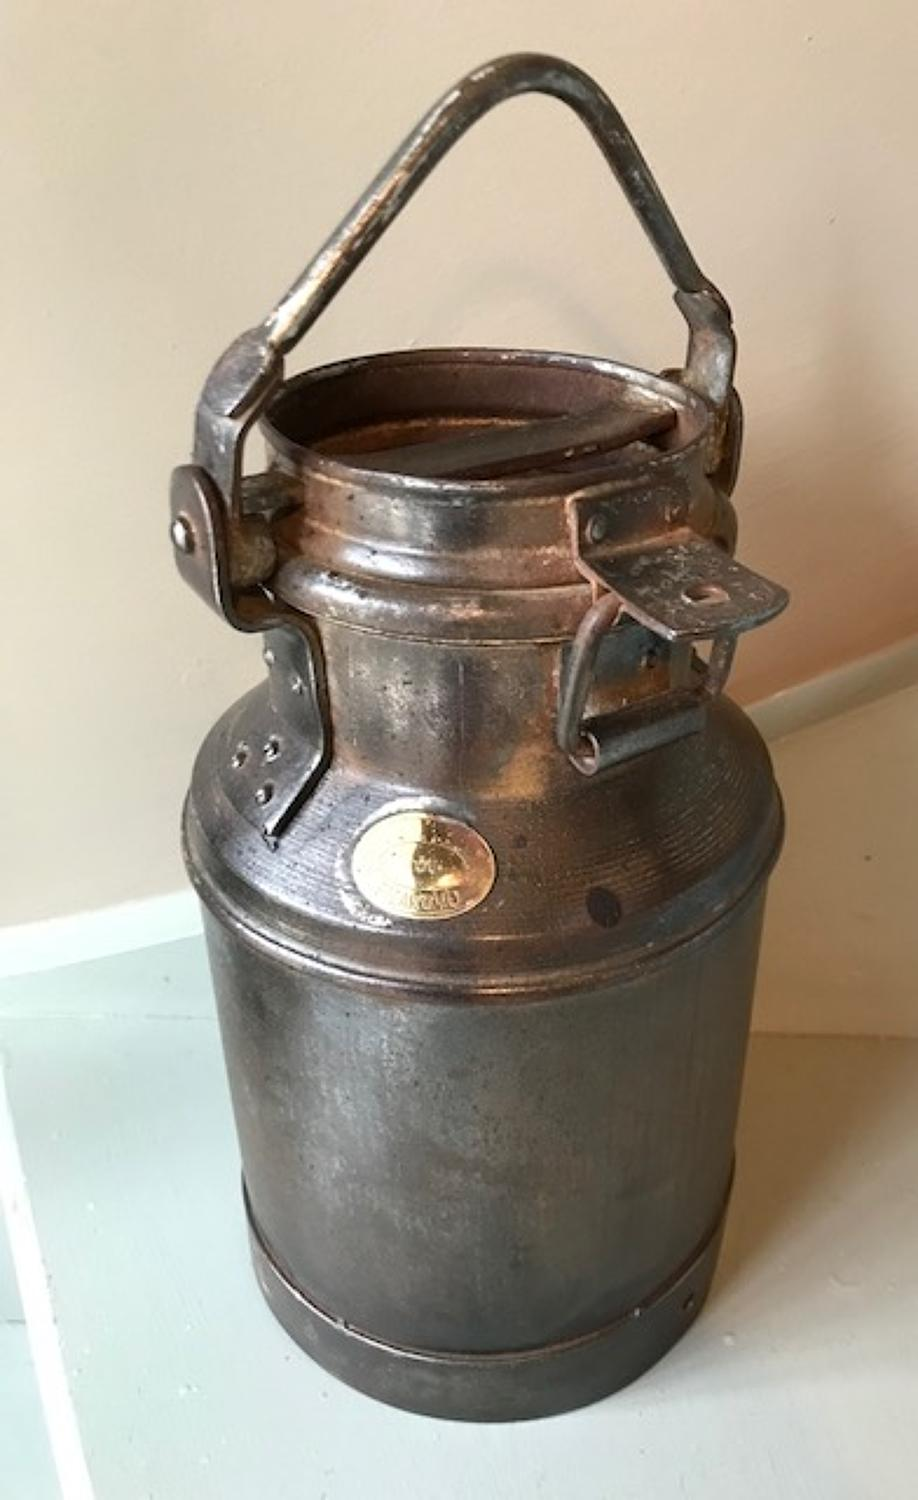 Lock Lid Milk Churn with brass label